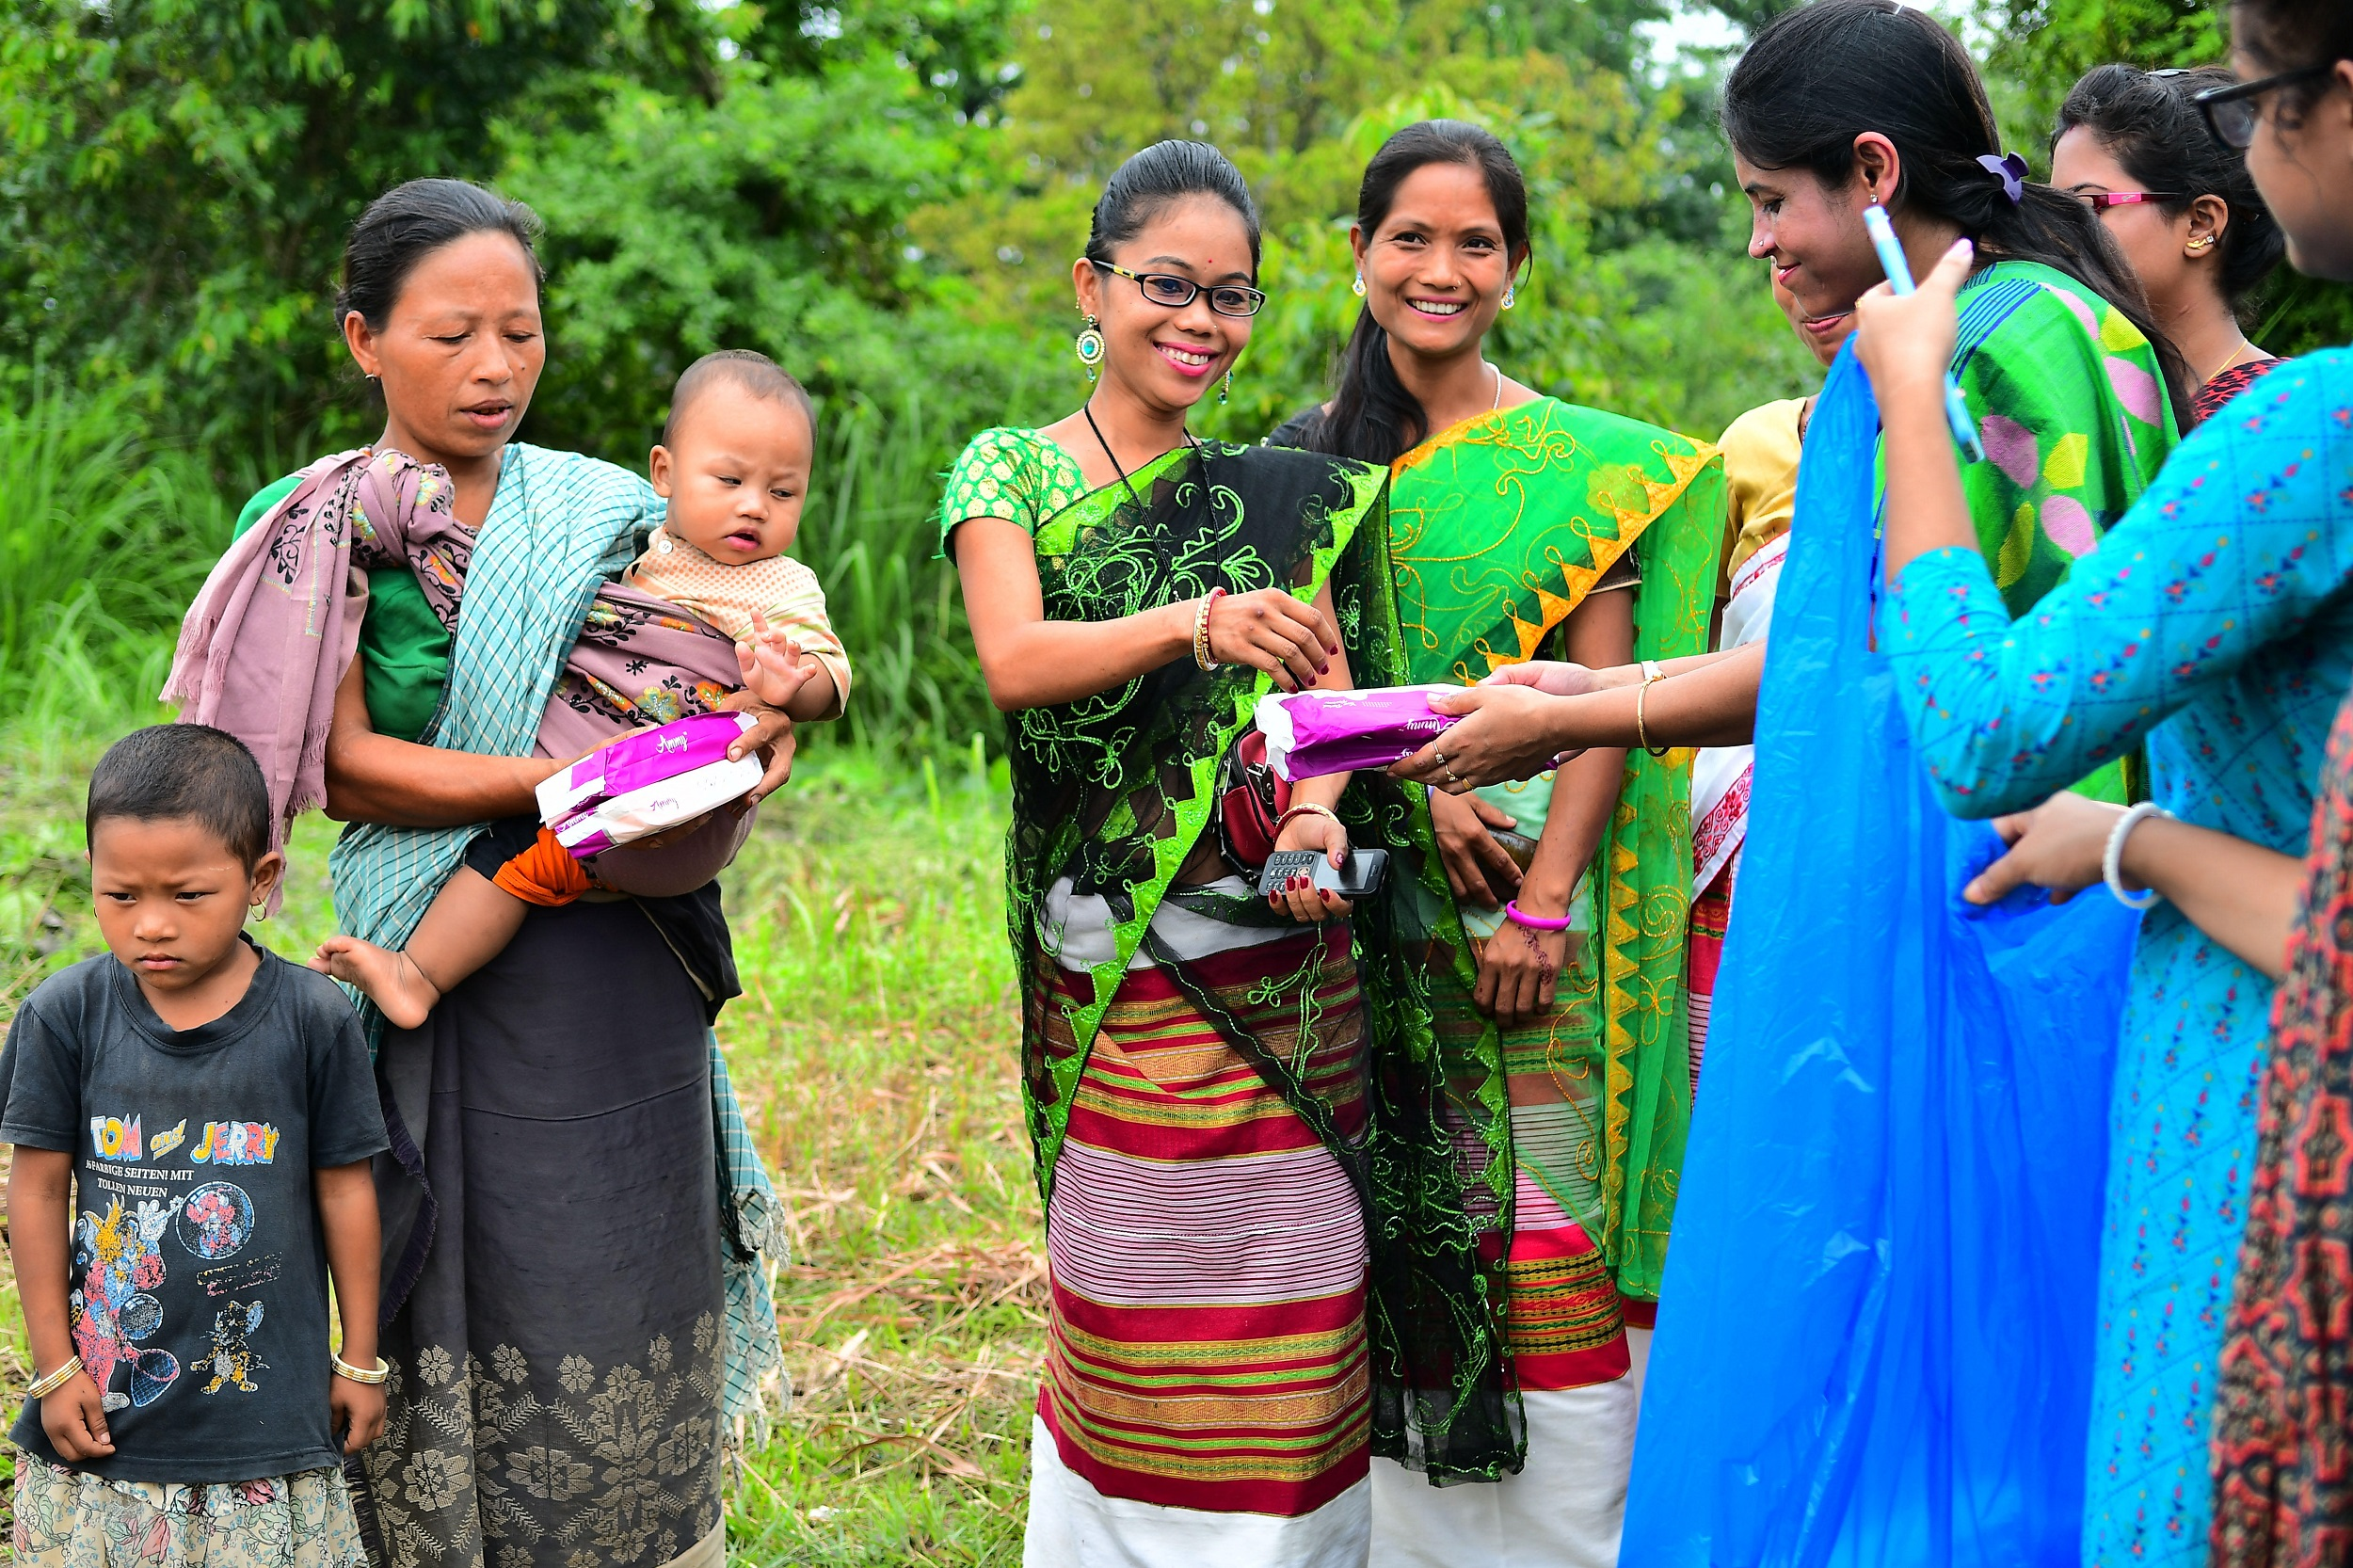 Health workers distributing free sanitary pads to the women and girls in the Indian state of Tripura and explaining to them the necessary of using it, in a health camp. [image by: Abhisek Saha / SOPA Images / ZUMA Wire / Alamy Live News]